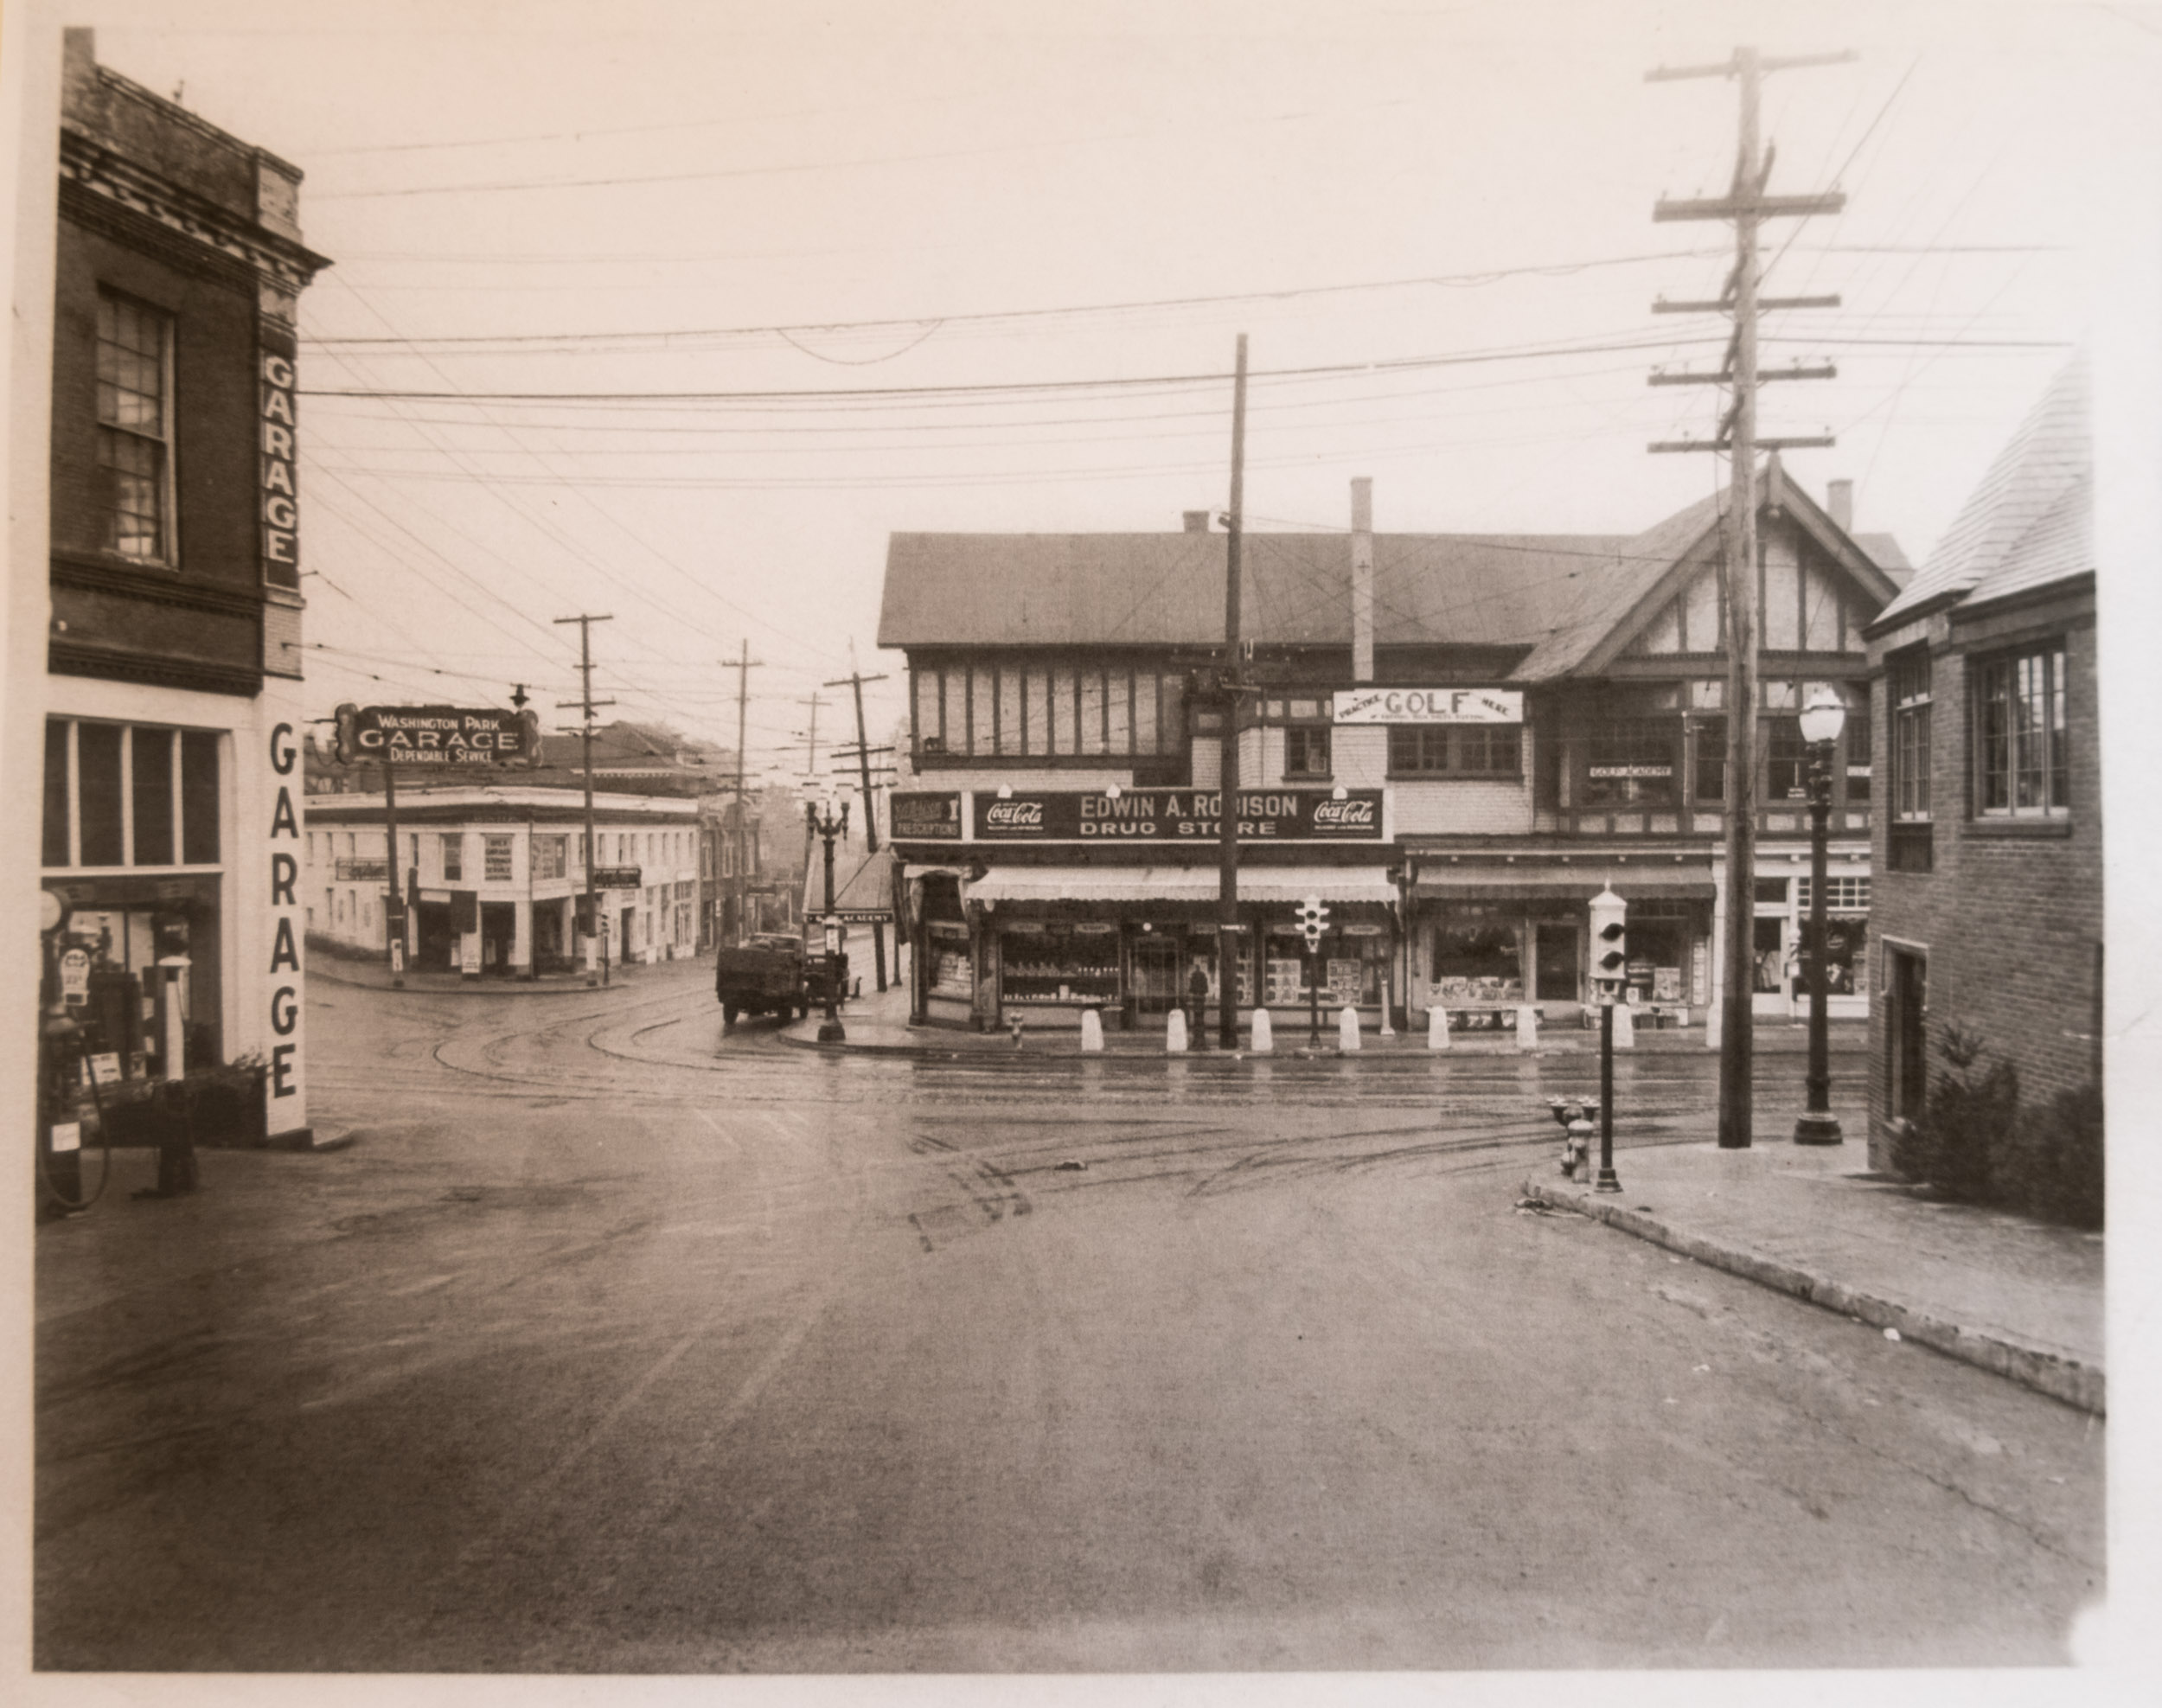 On SW Vista looking across Burnside to 23rd, date unknown